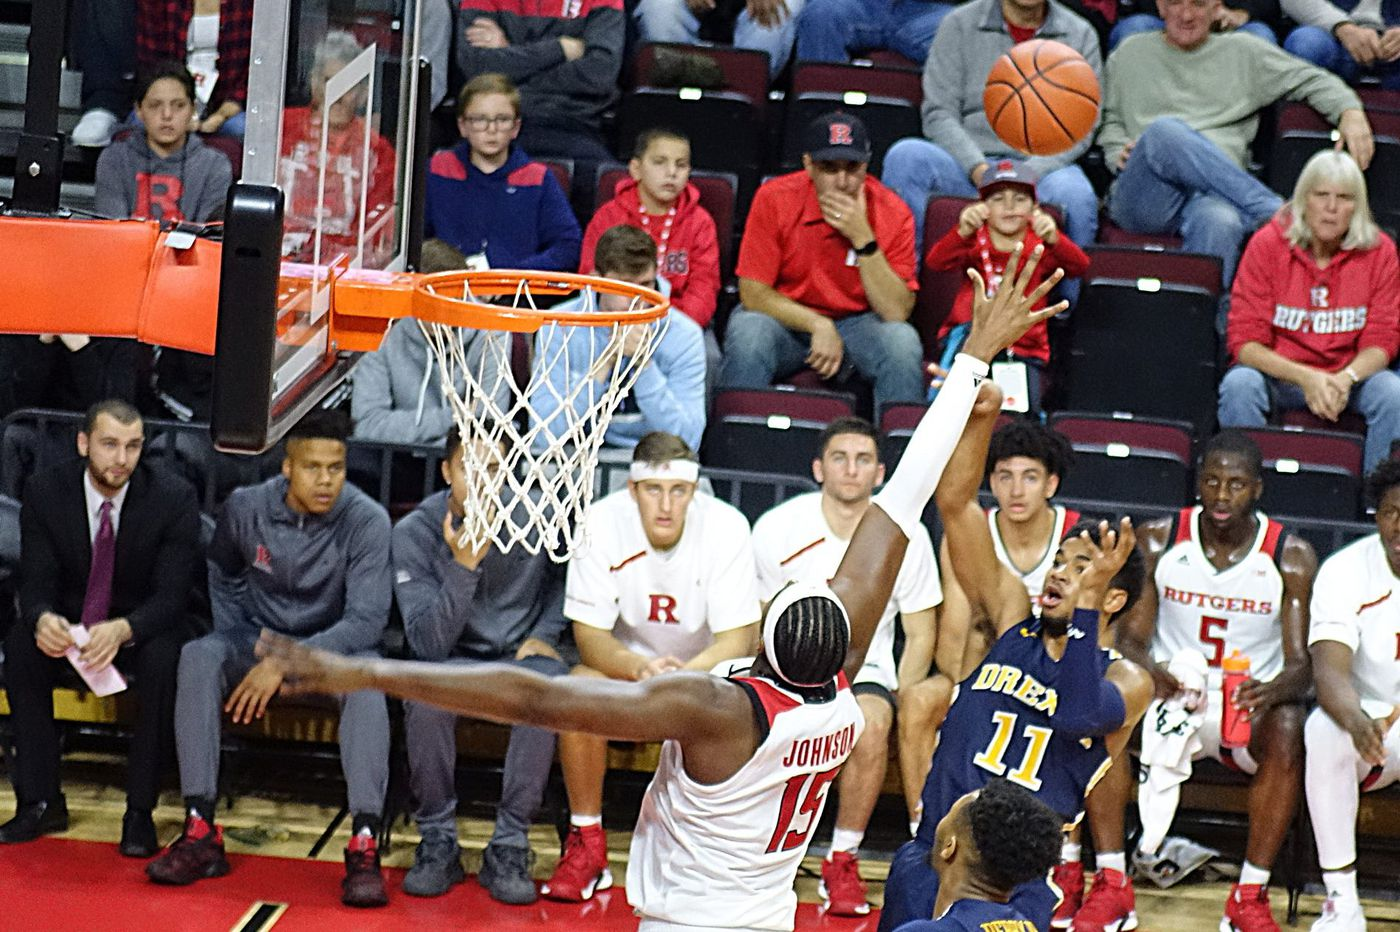 Rutgers uses second half surge to defeat Drexel 95-66